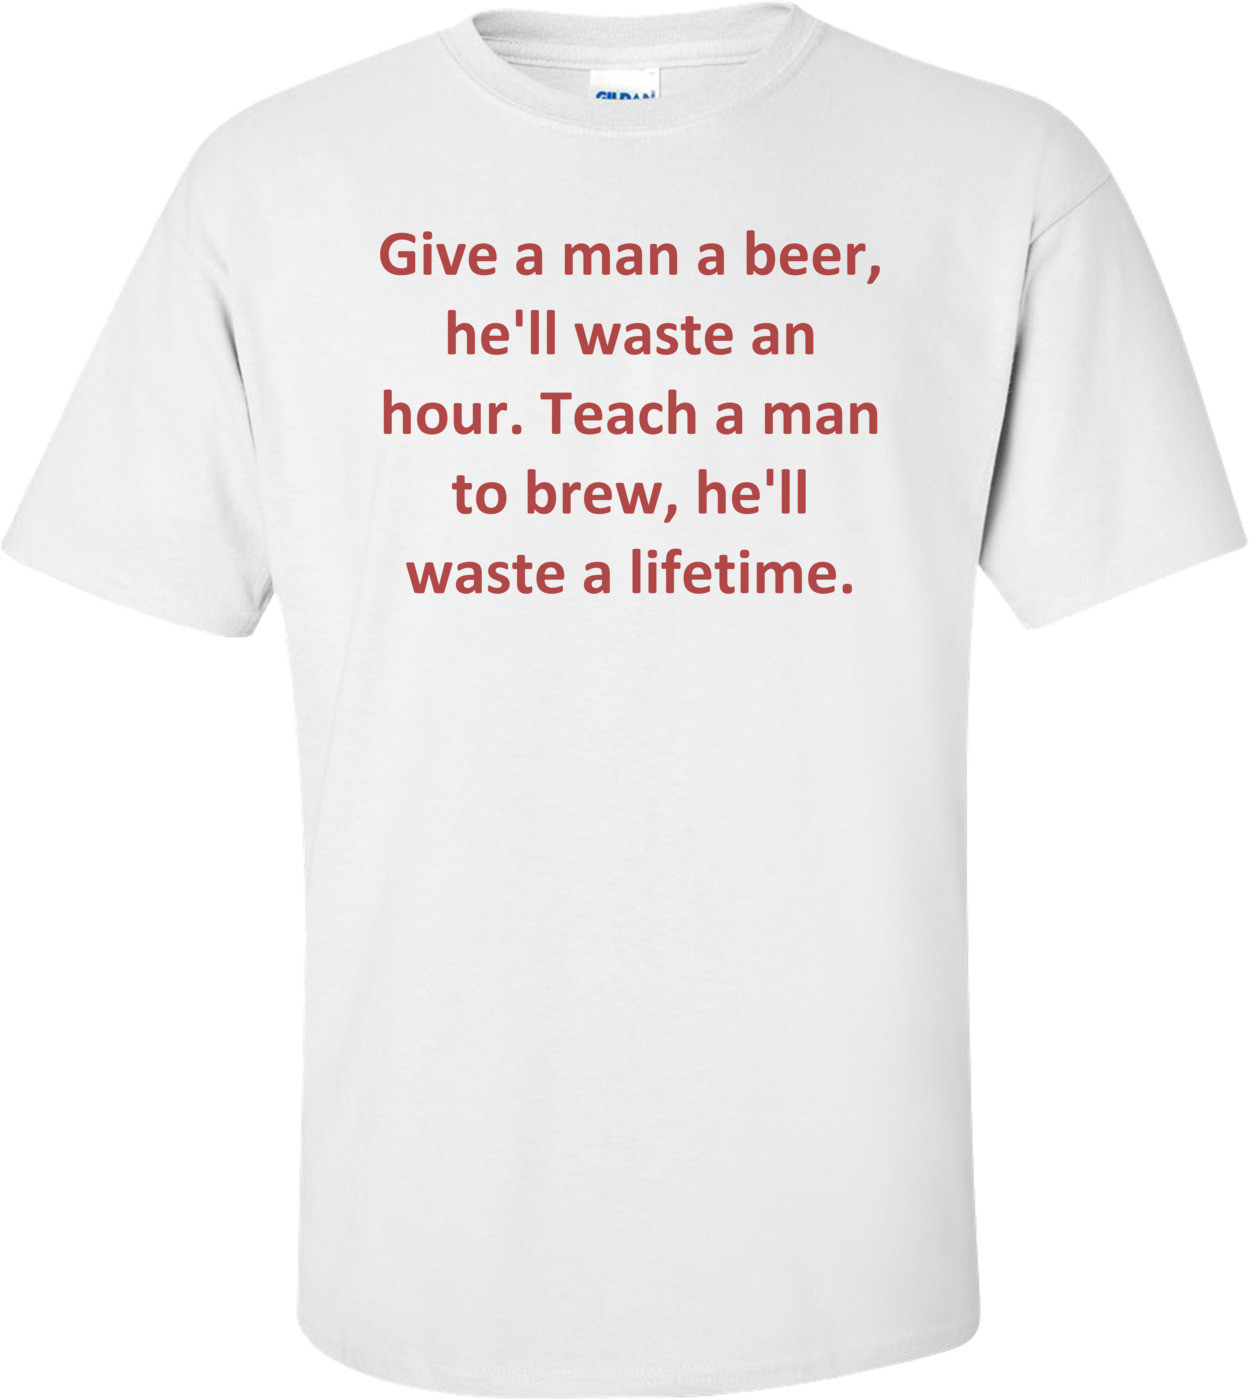 Give a man a beer, he'll waste an hour. Teach a man to brew, he'll waste a lifetime. Shirt